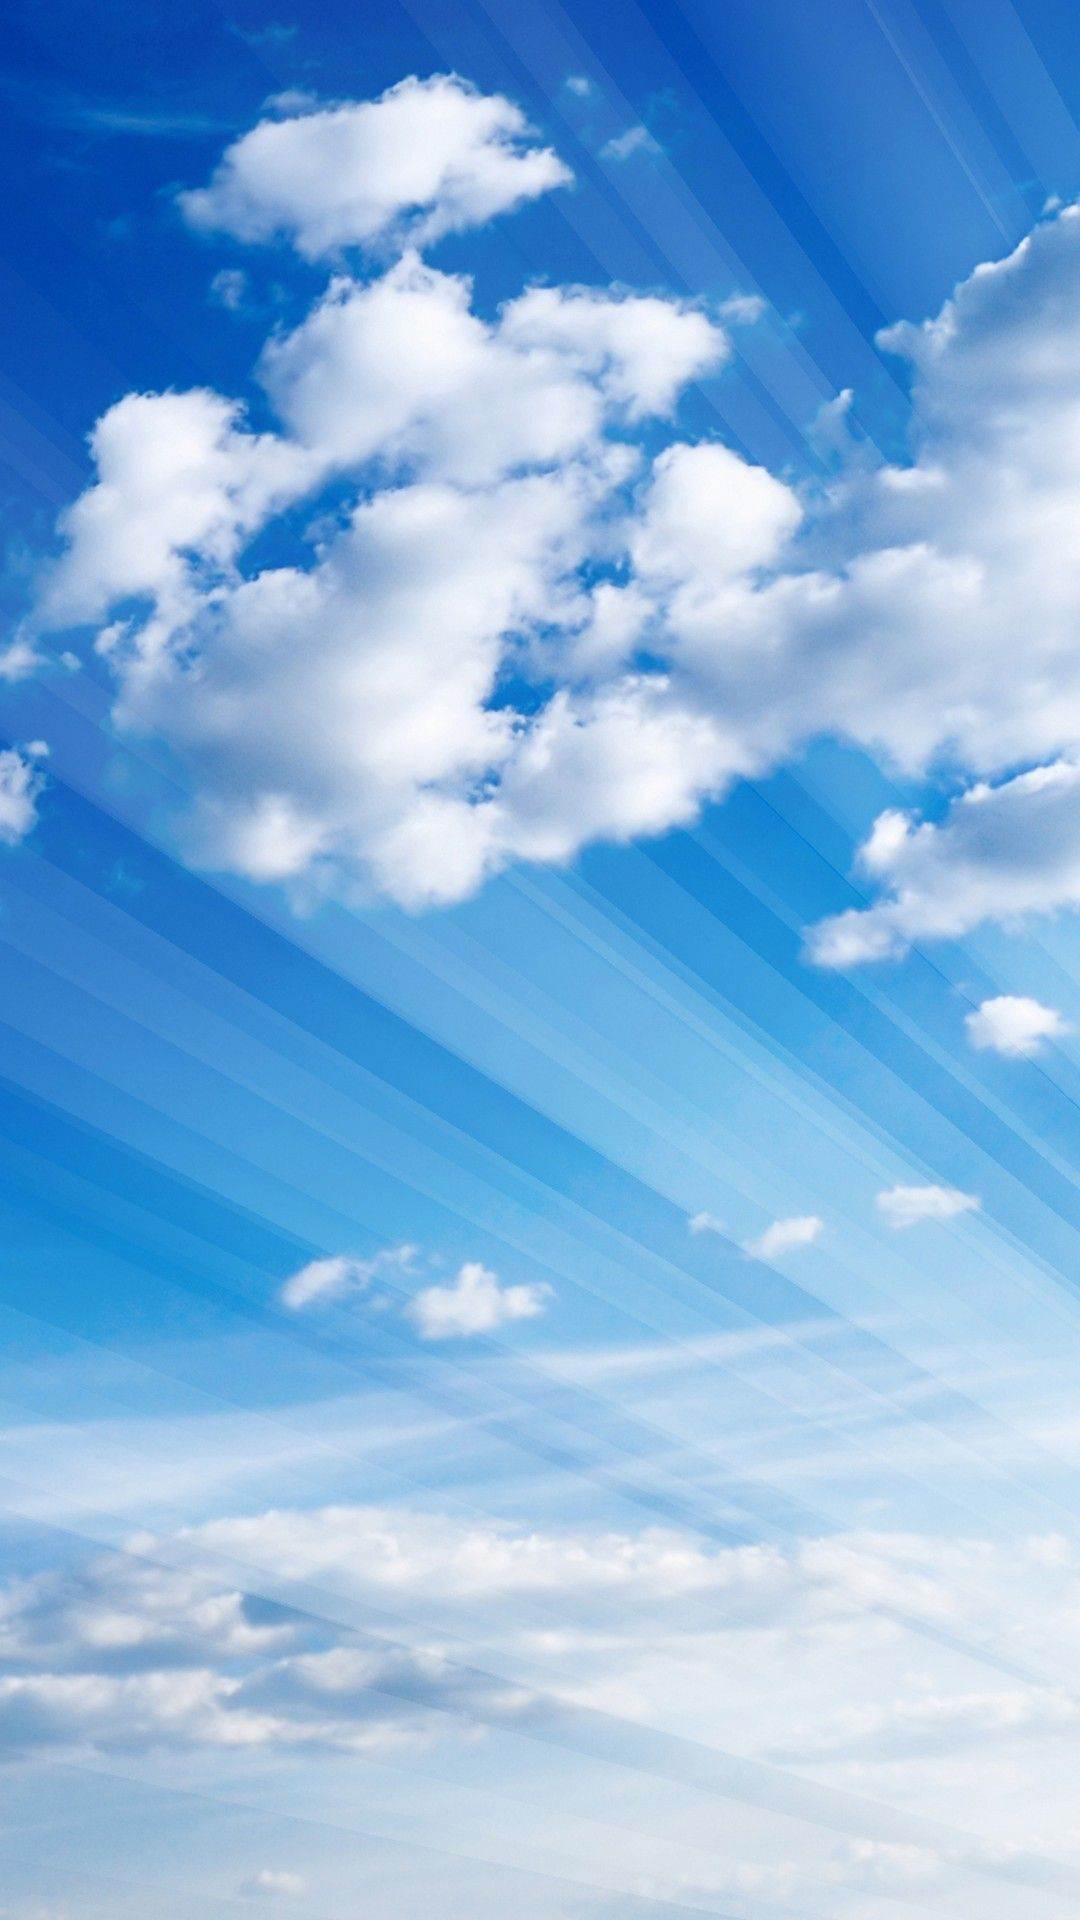 Blue And Silver Wallpaper Blue Sky Wallpaper Blue Sky Clouds Clouds